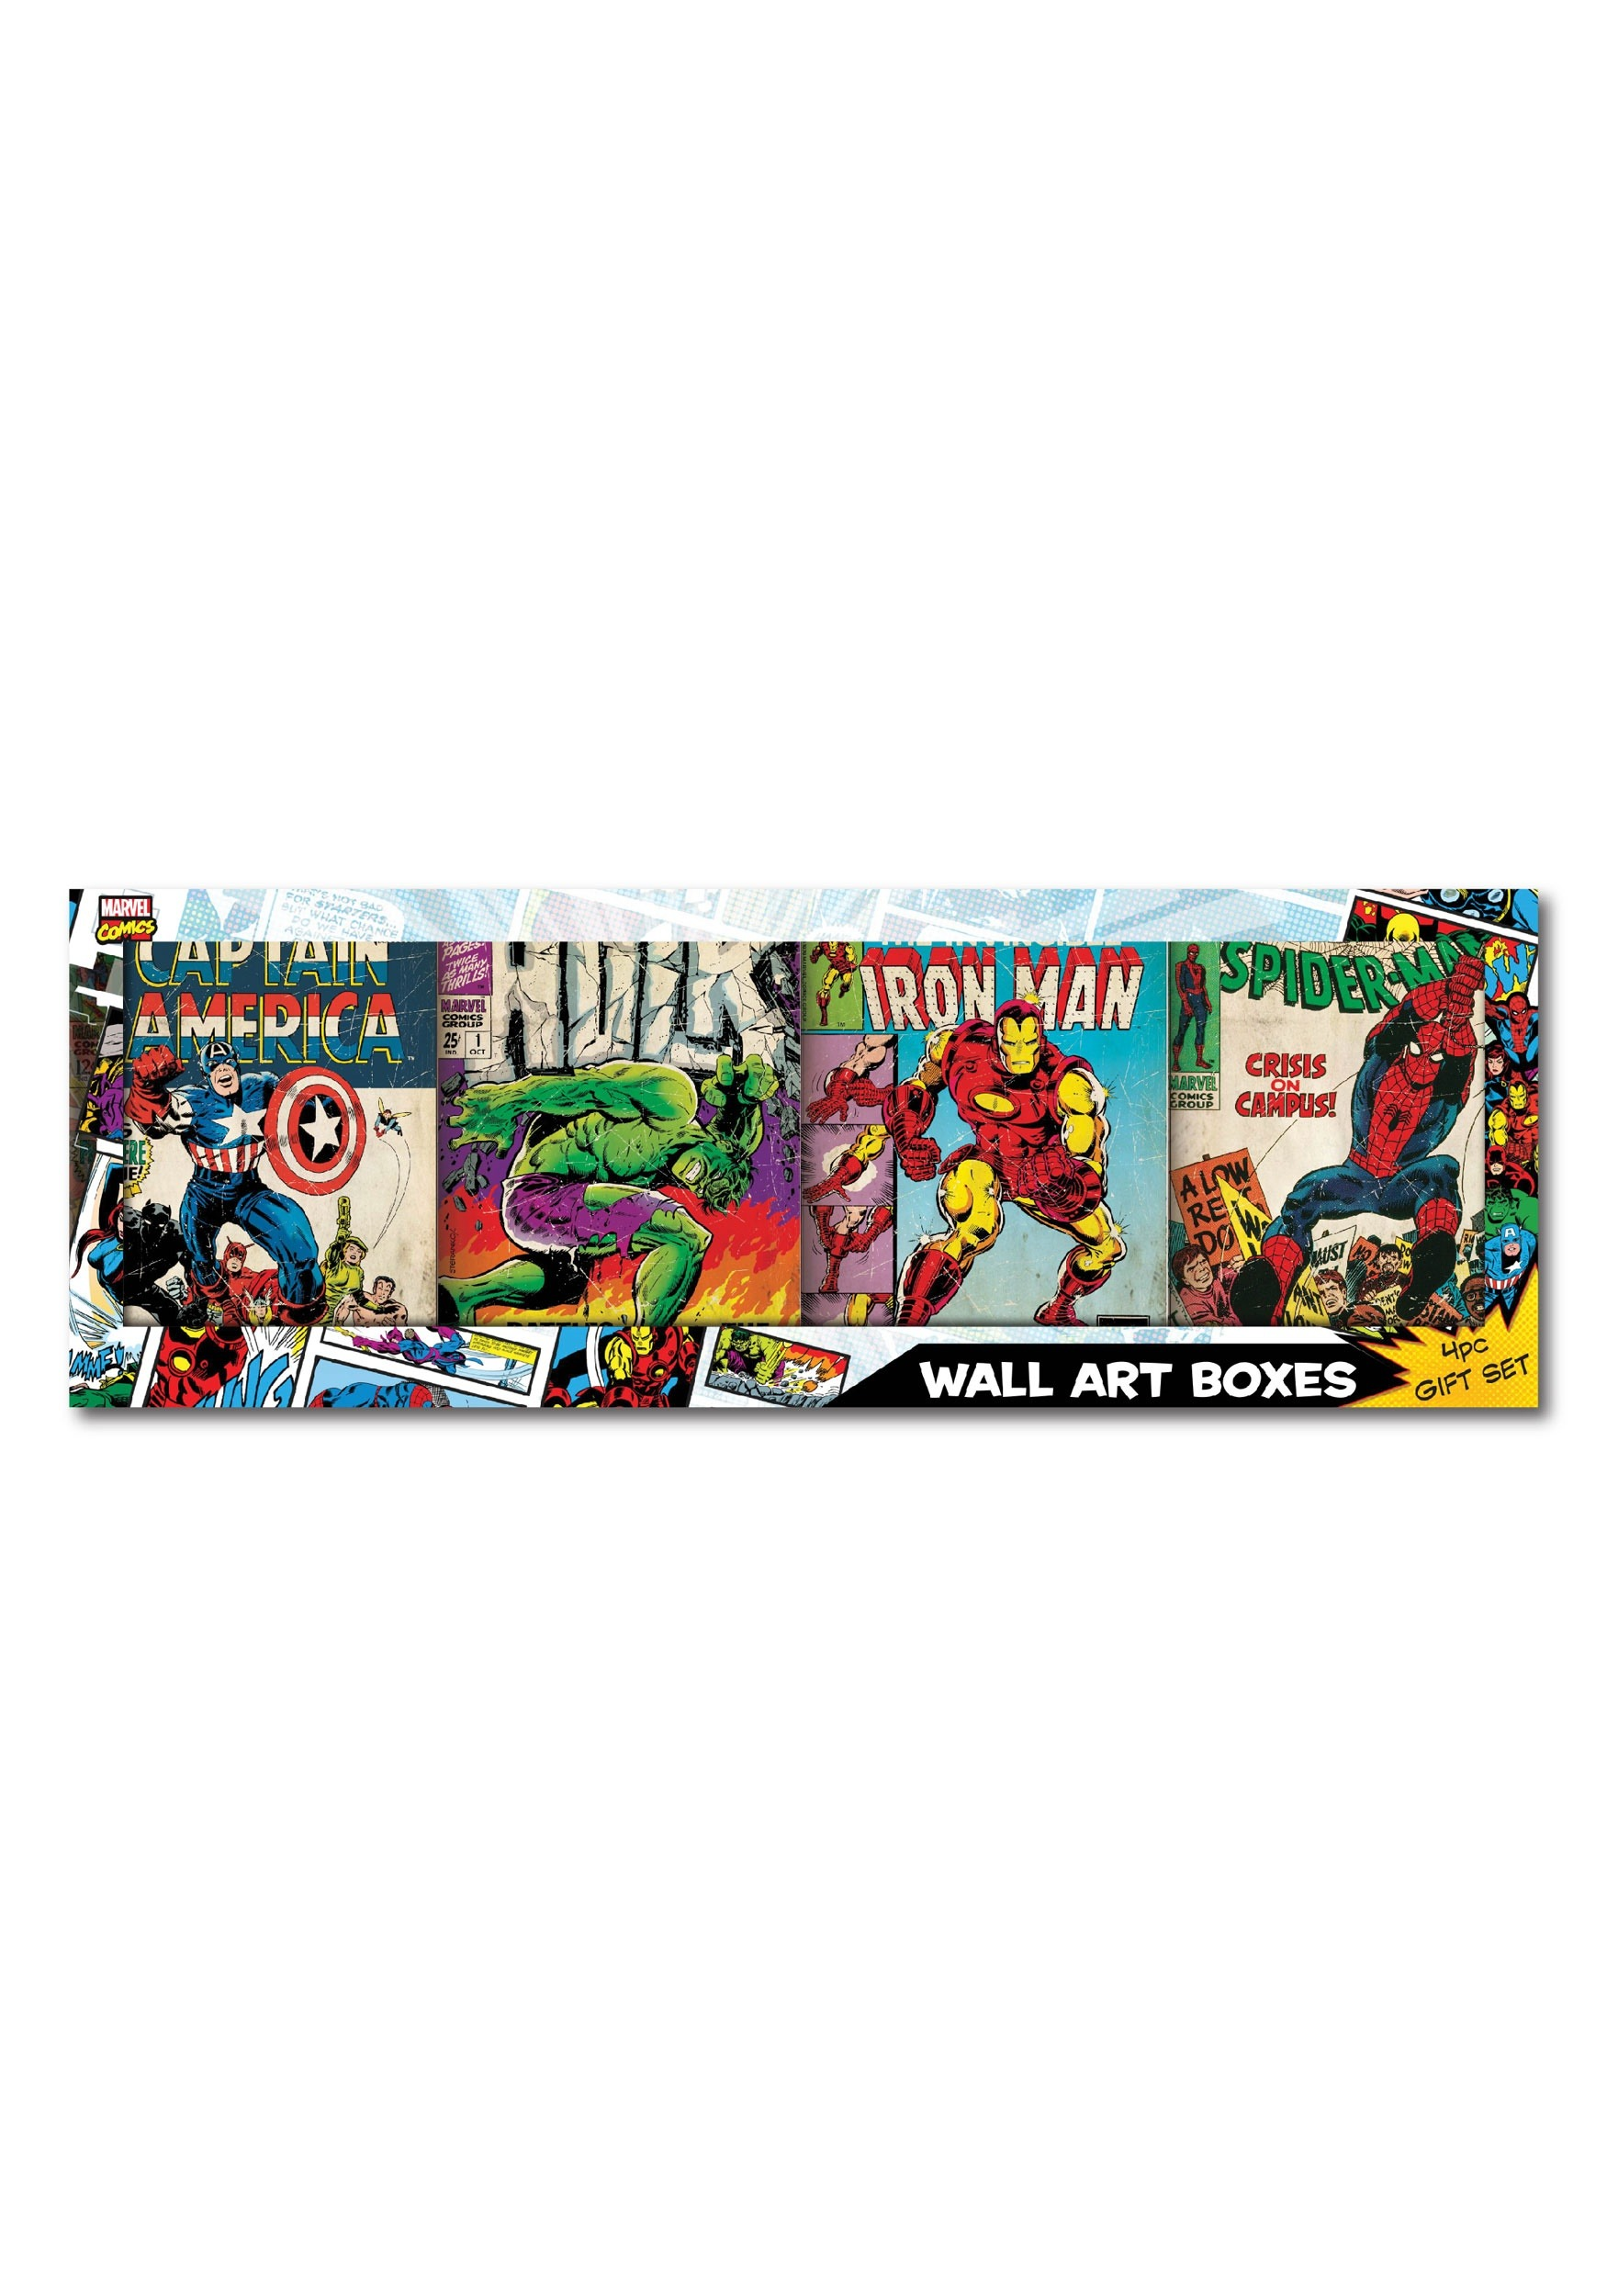 "Avengers Comic Book Cover Gift Set 30"" x 10.5"" - ddd51da81ceca6d , Avengers-Comic-Book-Cover-Gift-Set-30-x-10.5-13428463 , Avengers Comic Book Cover Gift Set 30"" x 10.5"" , Array , 13428463 , Wall Decor > Avengers > Adult > No Filter > unisex , EDGM79B001-GFT-ST"